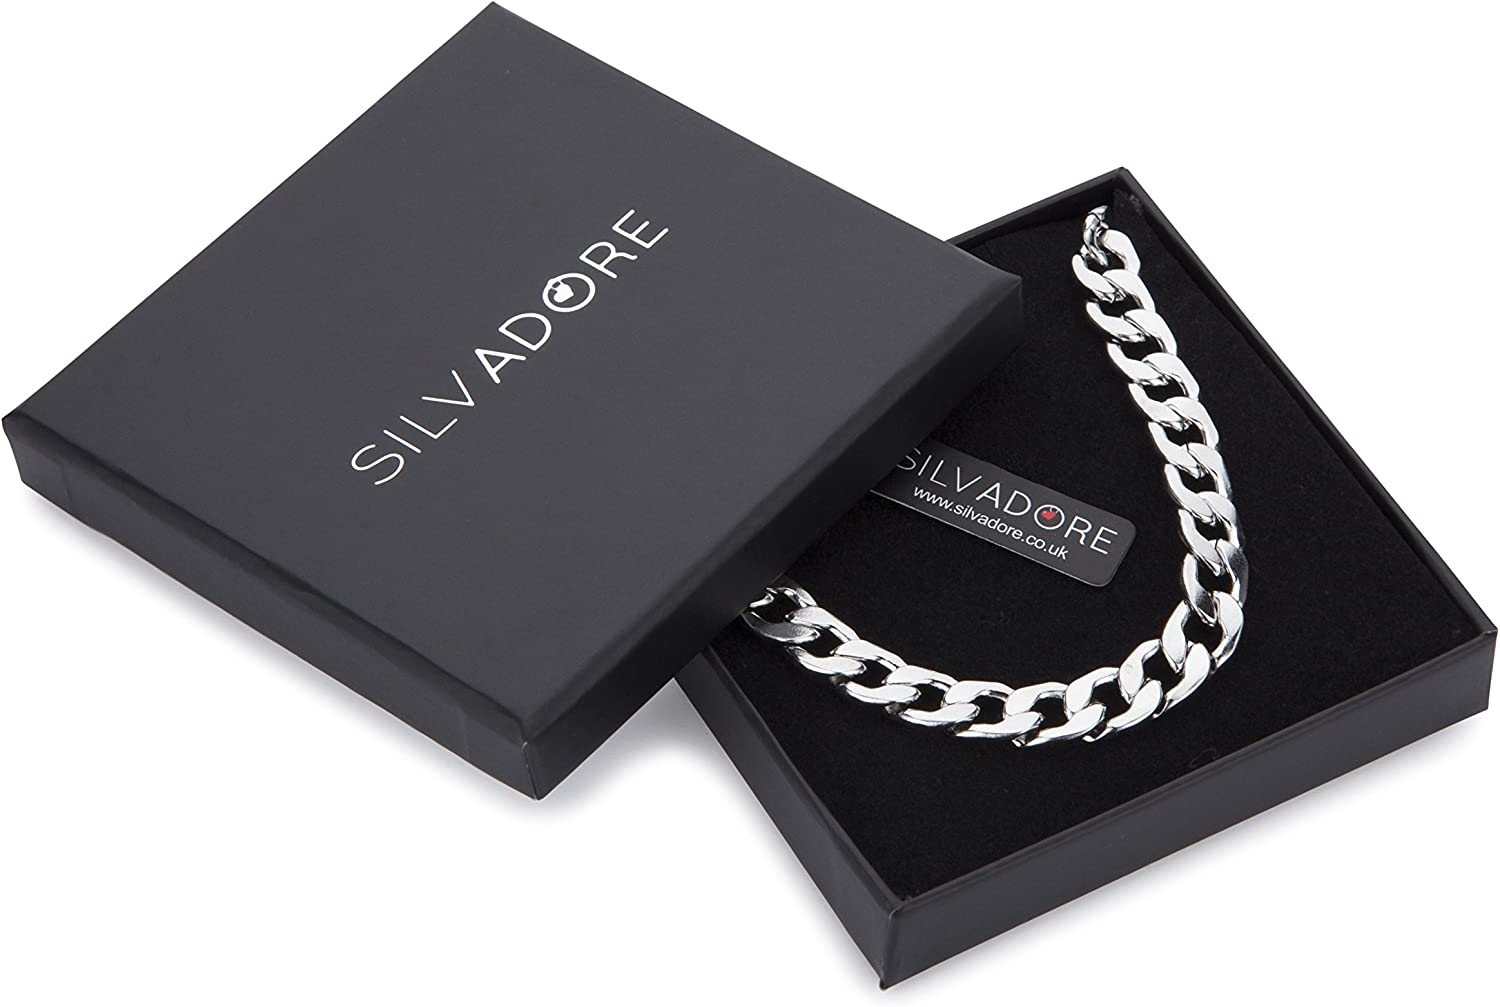 Neck Link Chains for Men Man Women Boys Kids 18 20 22 24-8mm Bracelet 7.5 8 8.5 9 Silvadore 9mm CURB Mens Necklace Silver Chain Cuban Stainless Steel Jewellery